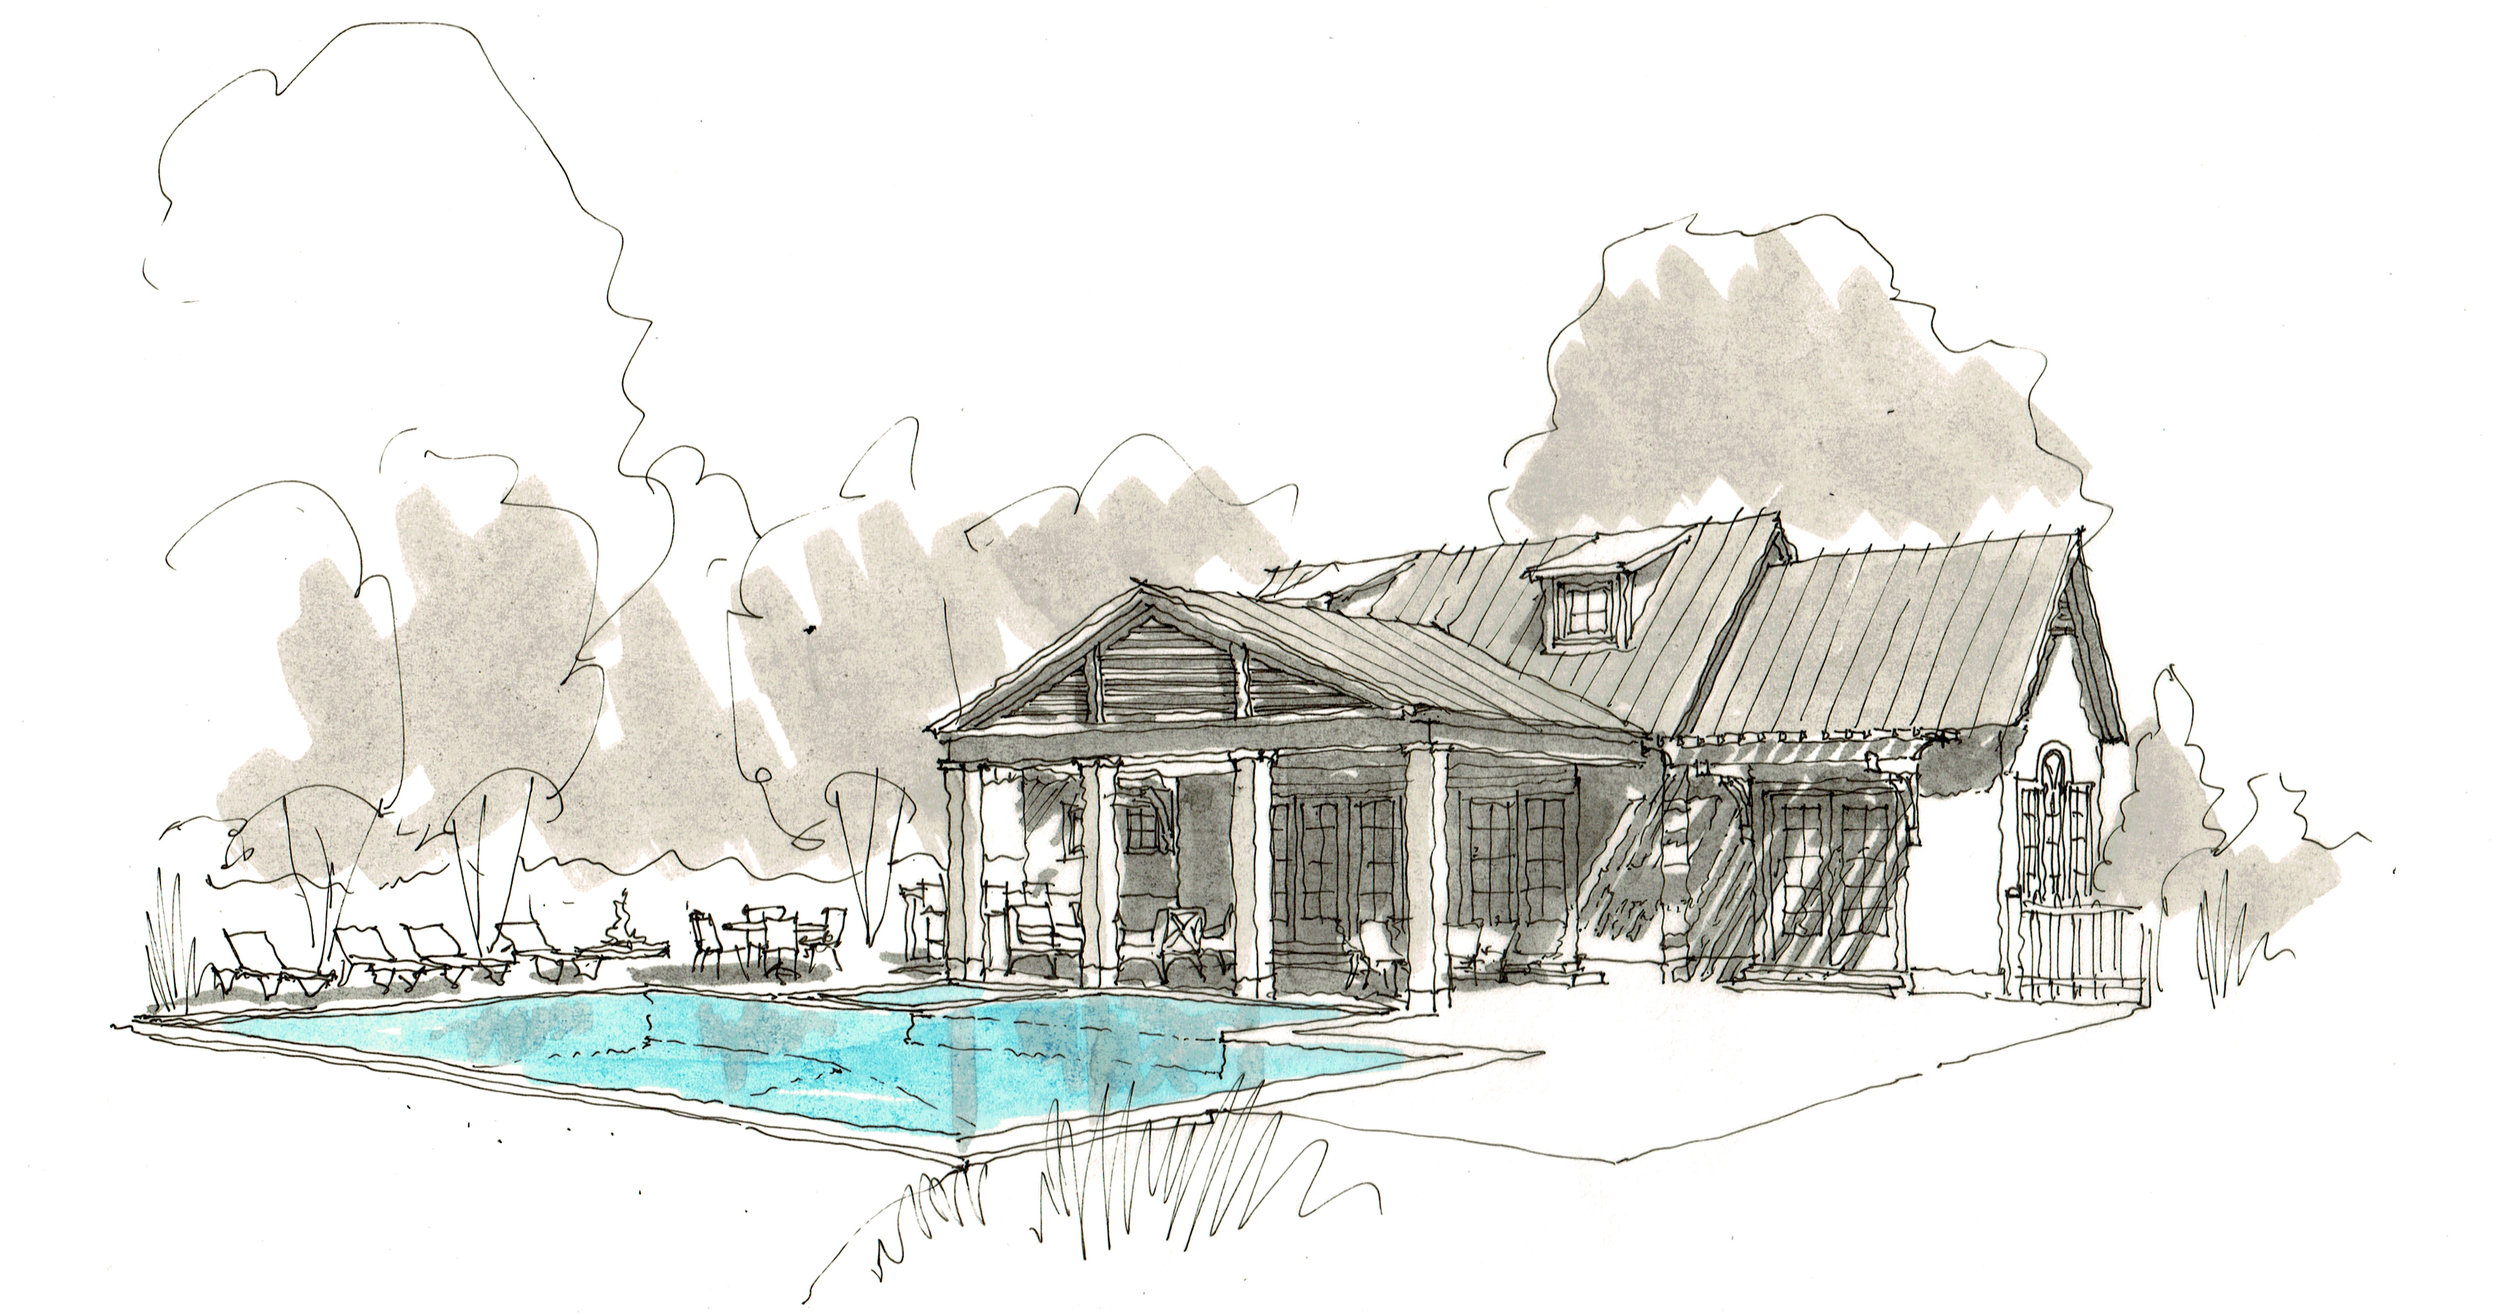 2015.10.22 Pool House Sketch.jpg